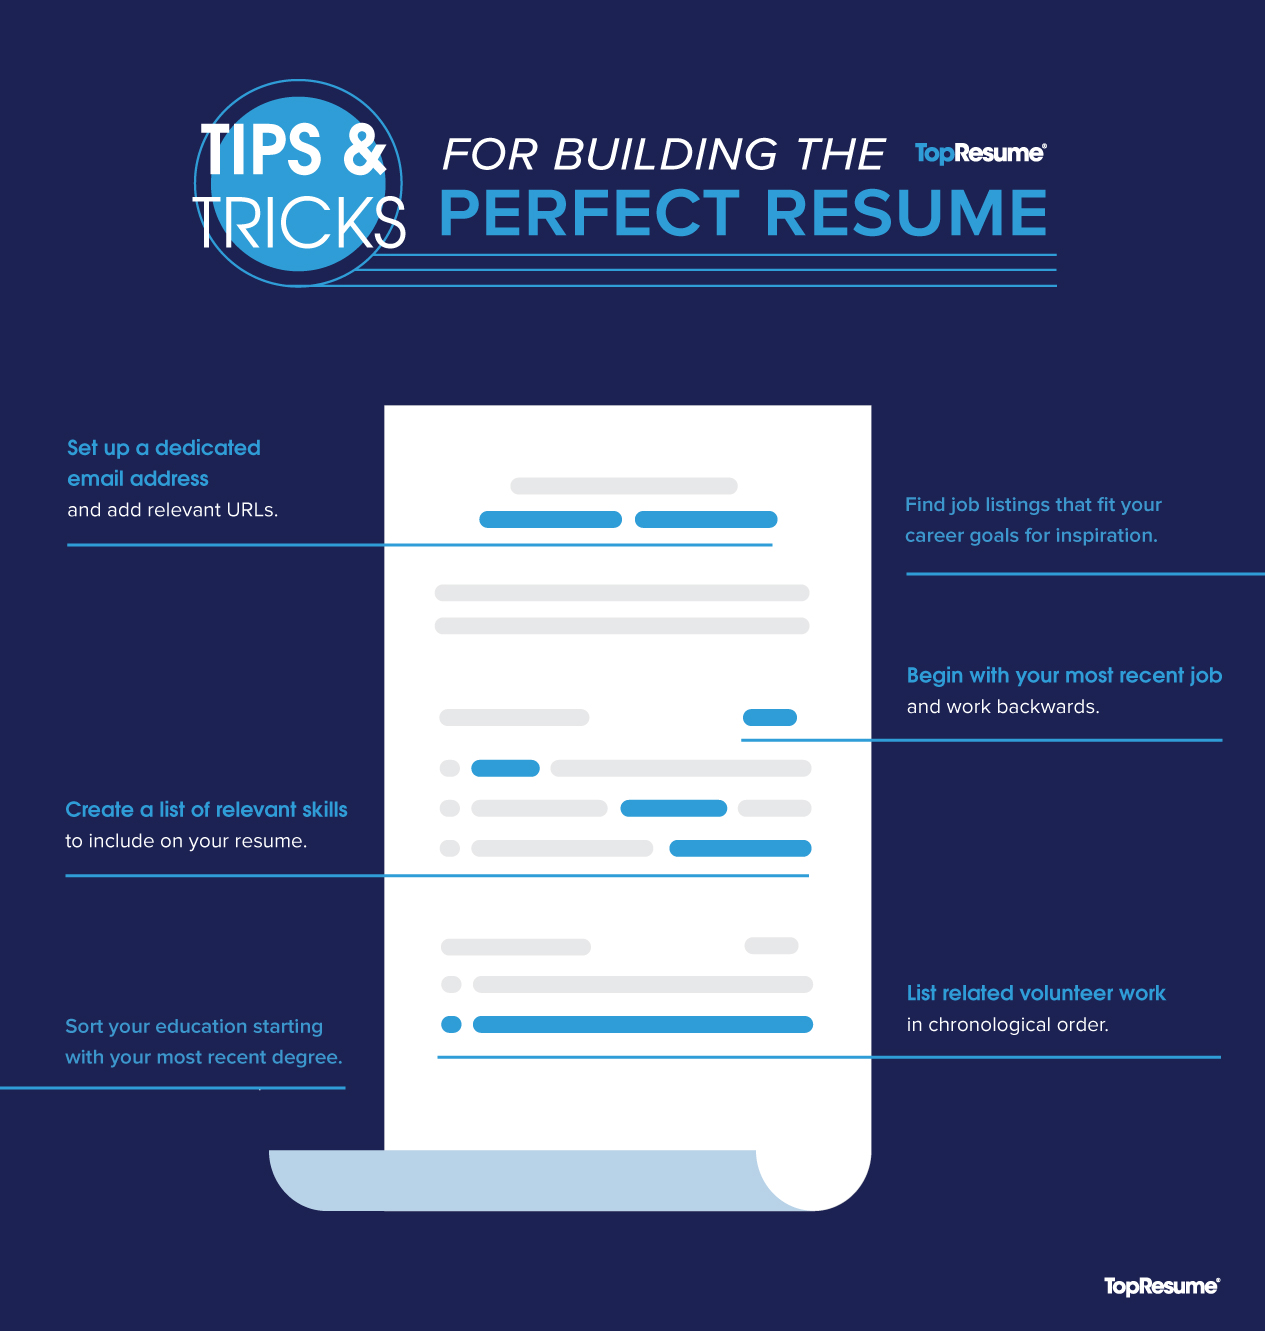 steps to writing the perfect resume topresume advice with 11stepsinfographic current Resume Advice With Resume Writing